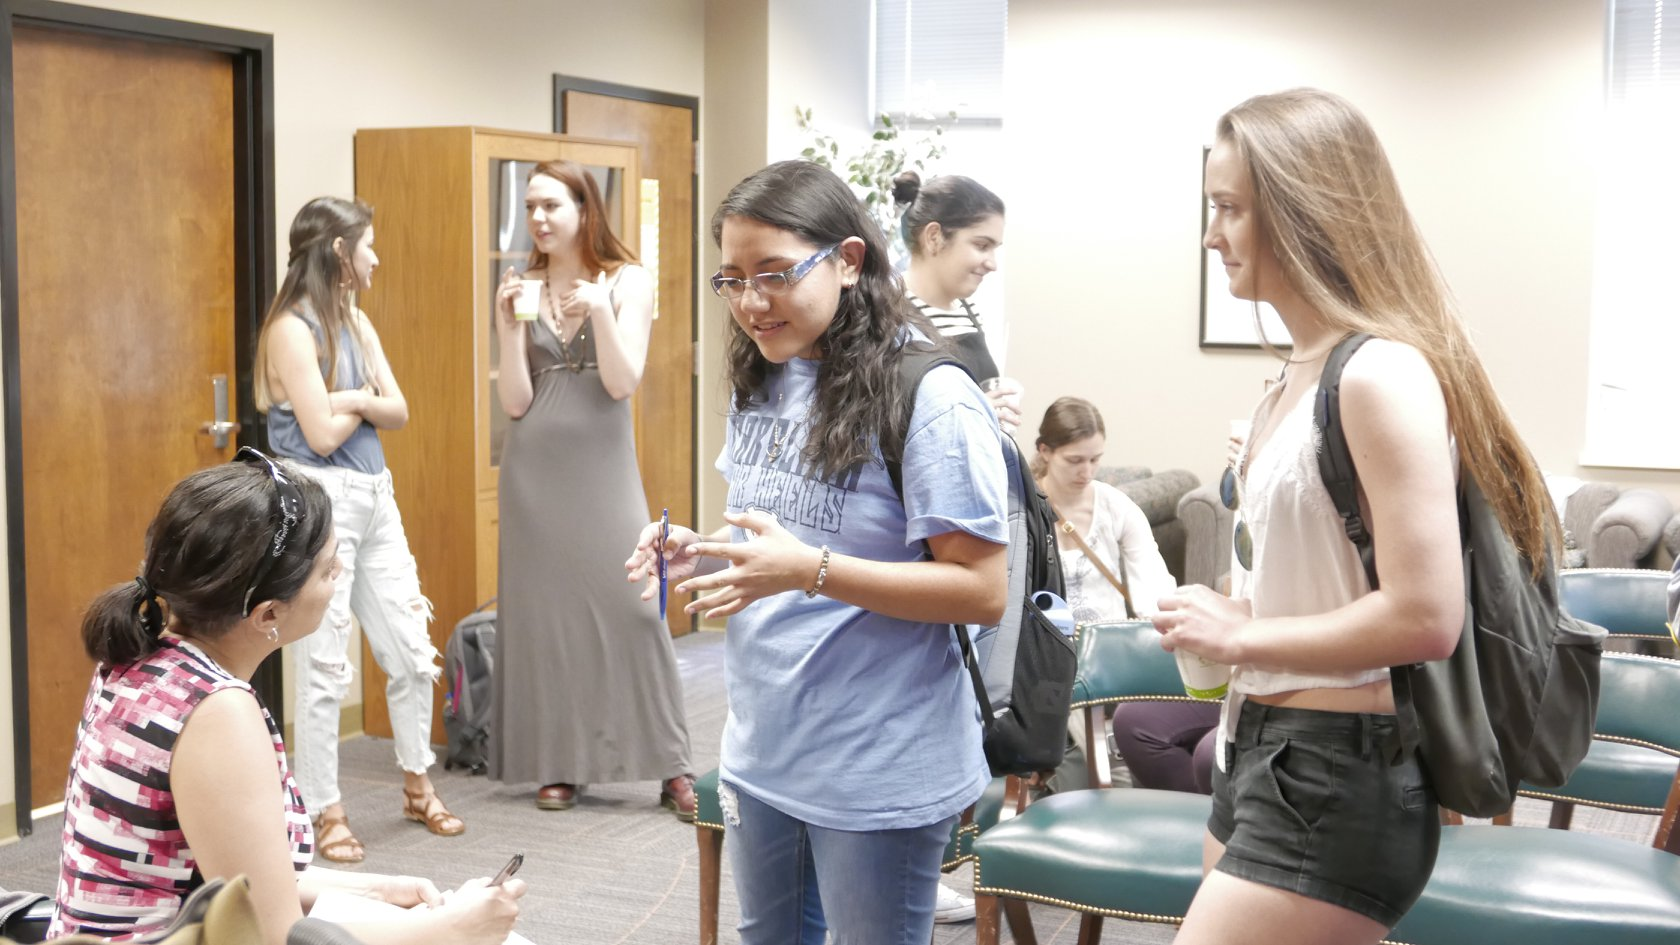 Two students chatting with Daisy Hernández in a large conference room while four other students socialize in the background.